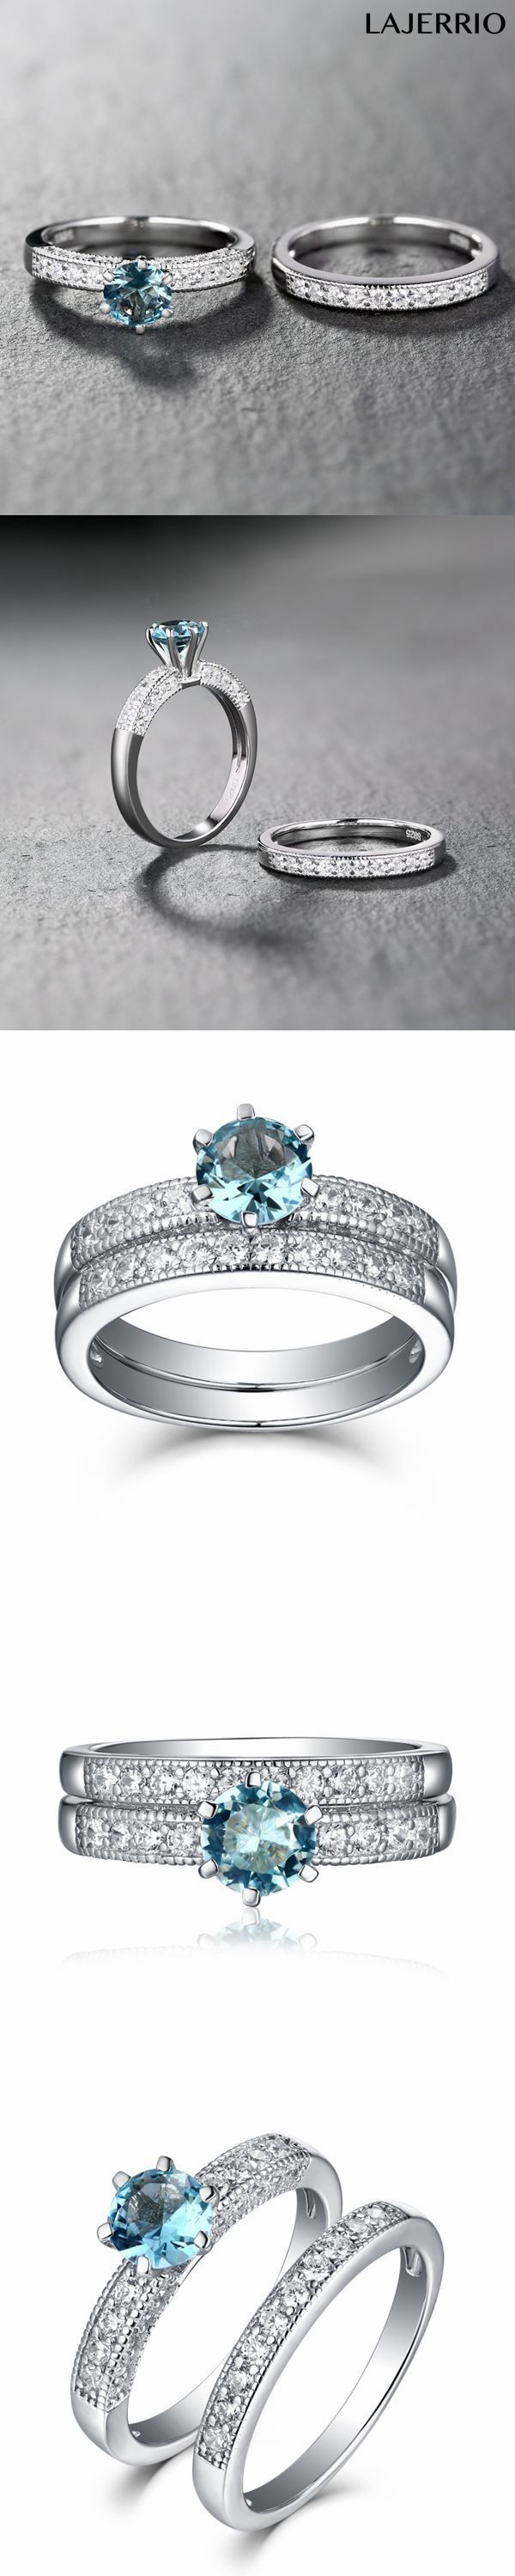 Lajerrio Jewelry Round Cut Aquamarine 925 Sterling Silver Ring Sets